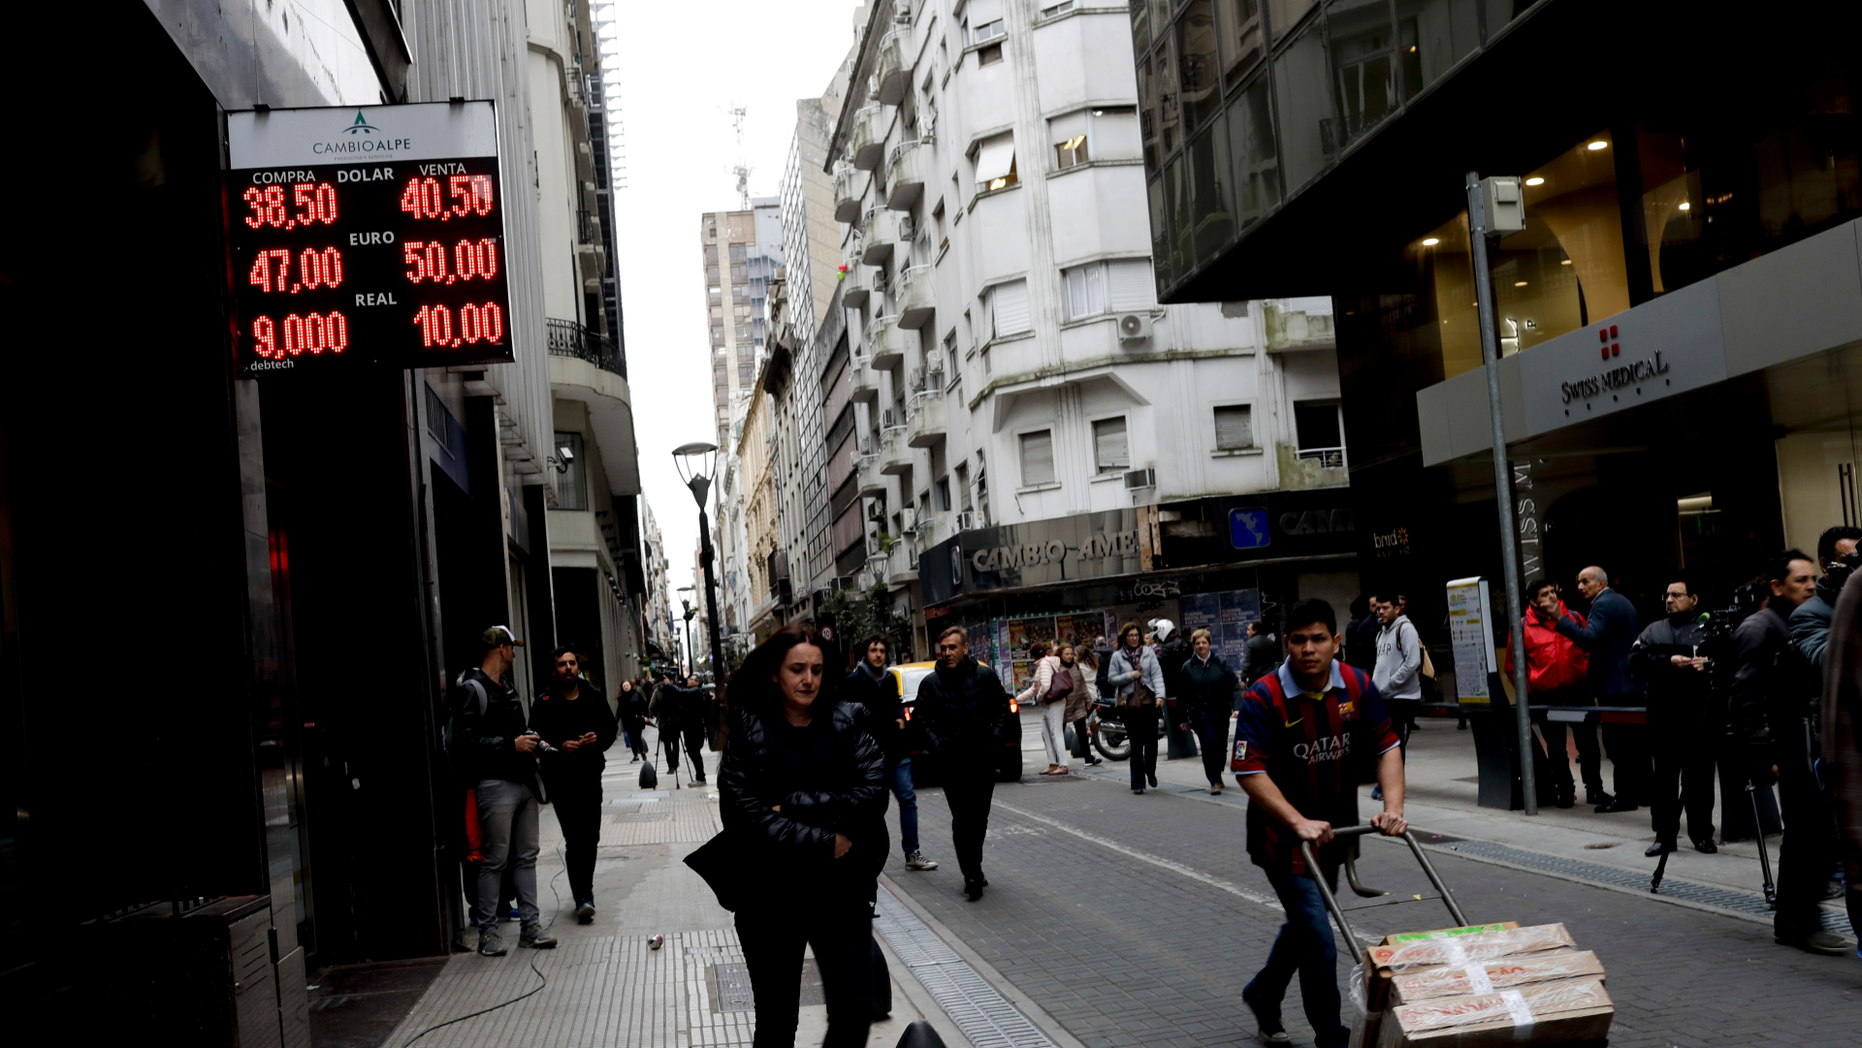 FILE - In this Aug. 30, 2018 file photo, people walk past an exchange house in Buenos Aires, Argentina. Argentina had hoped to show off its newly market-friendly economy to the world when the G-20 group of the world's top economies begins its first South American summit in late November, but instead it's looking for help to avoid an all-out crisis. (AP Photo/Natacha Pisarenko, File)